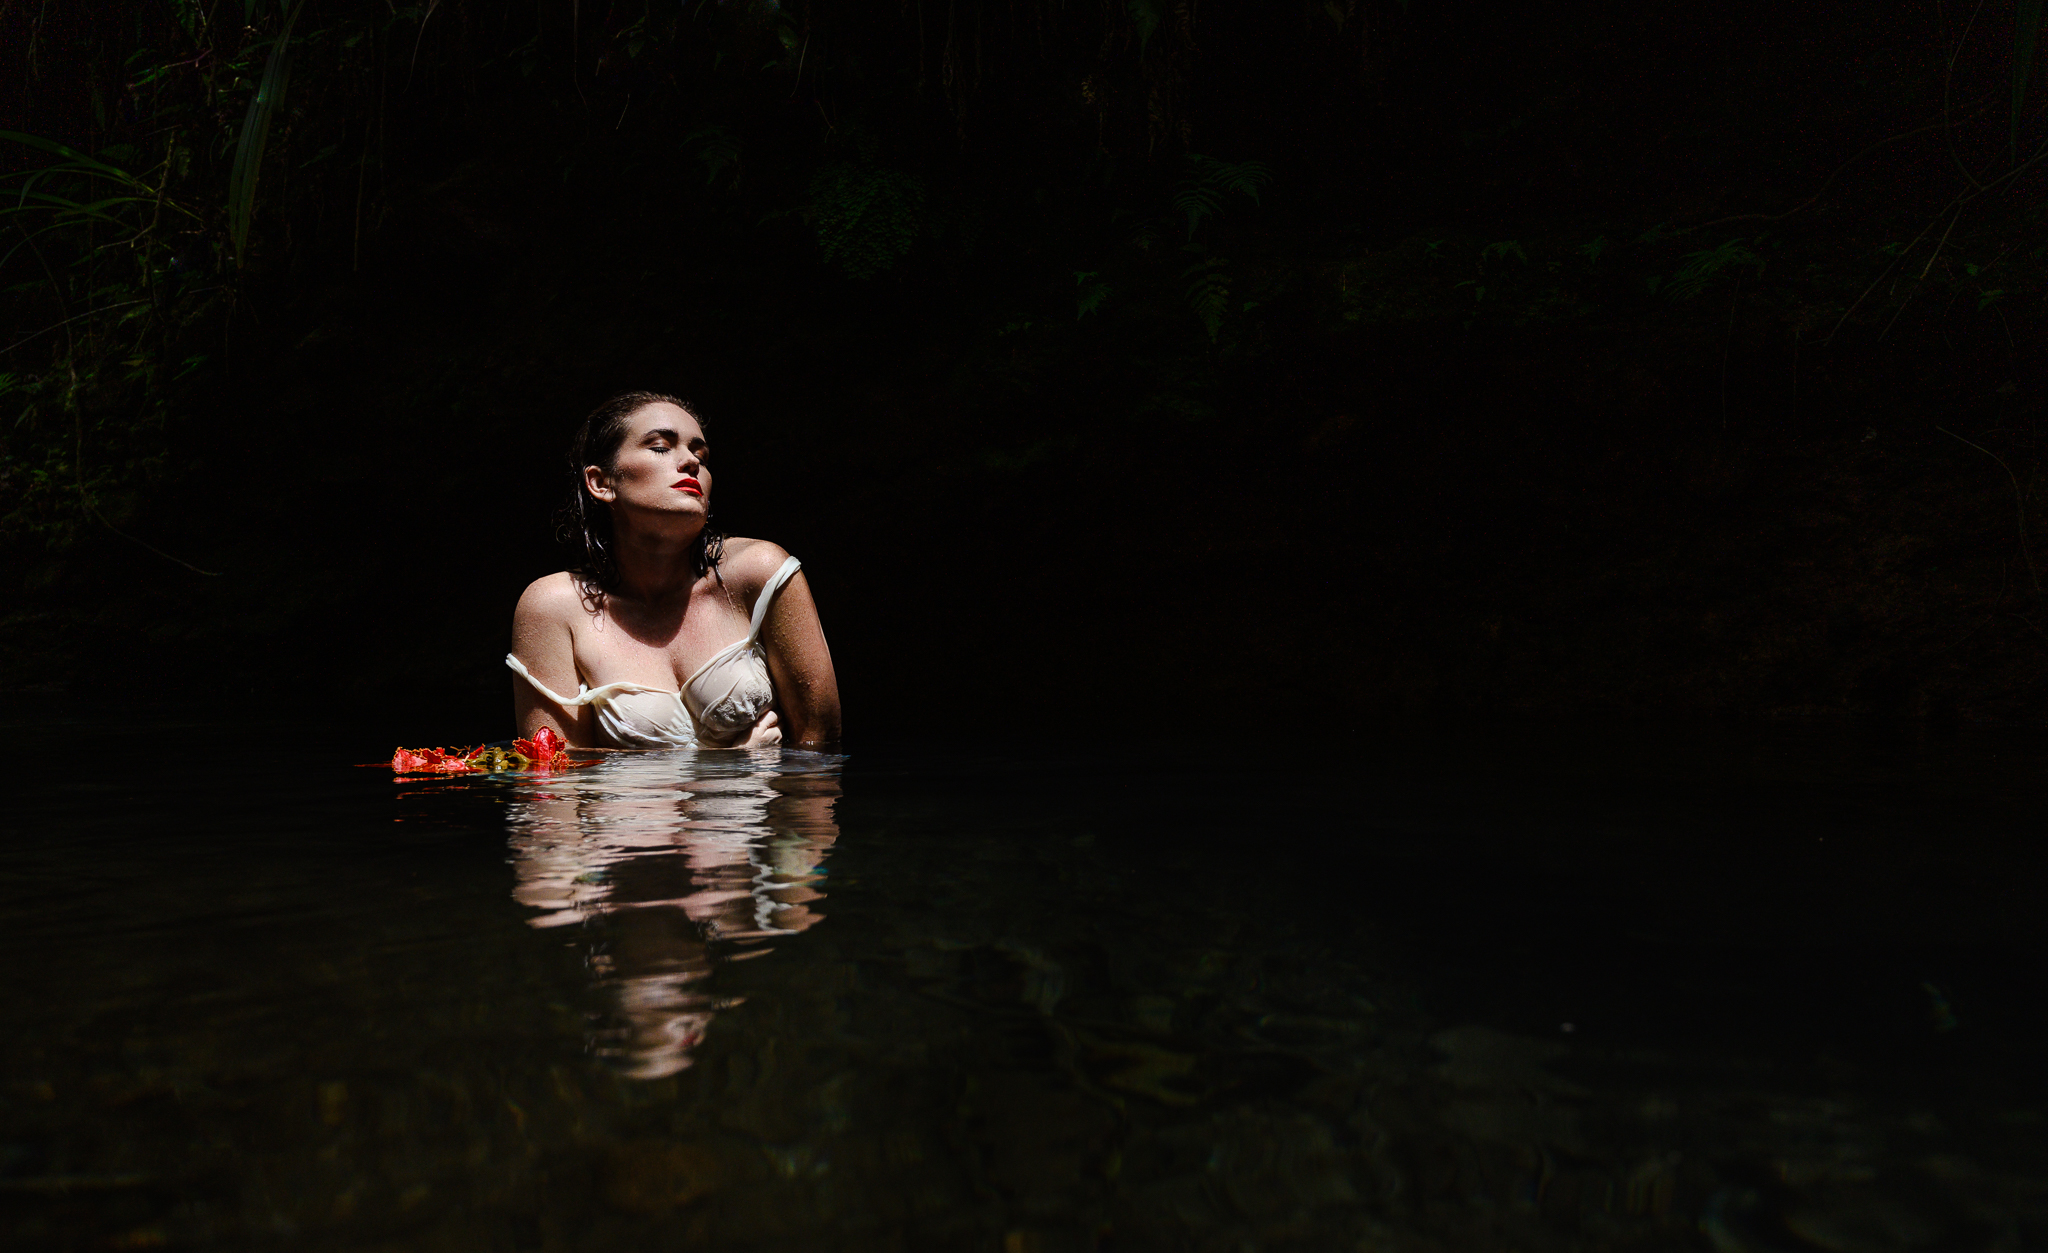 fine art woman in water limited edition photography